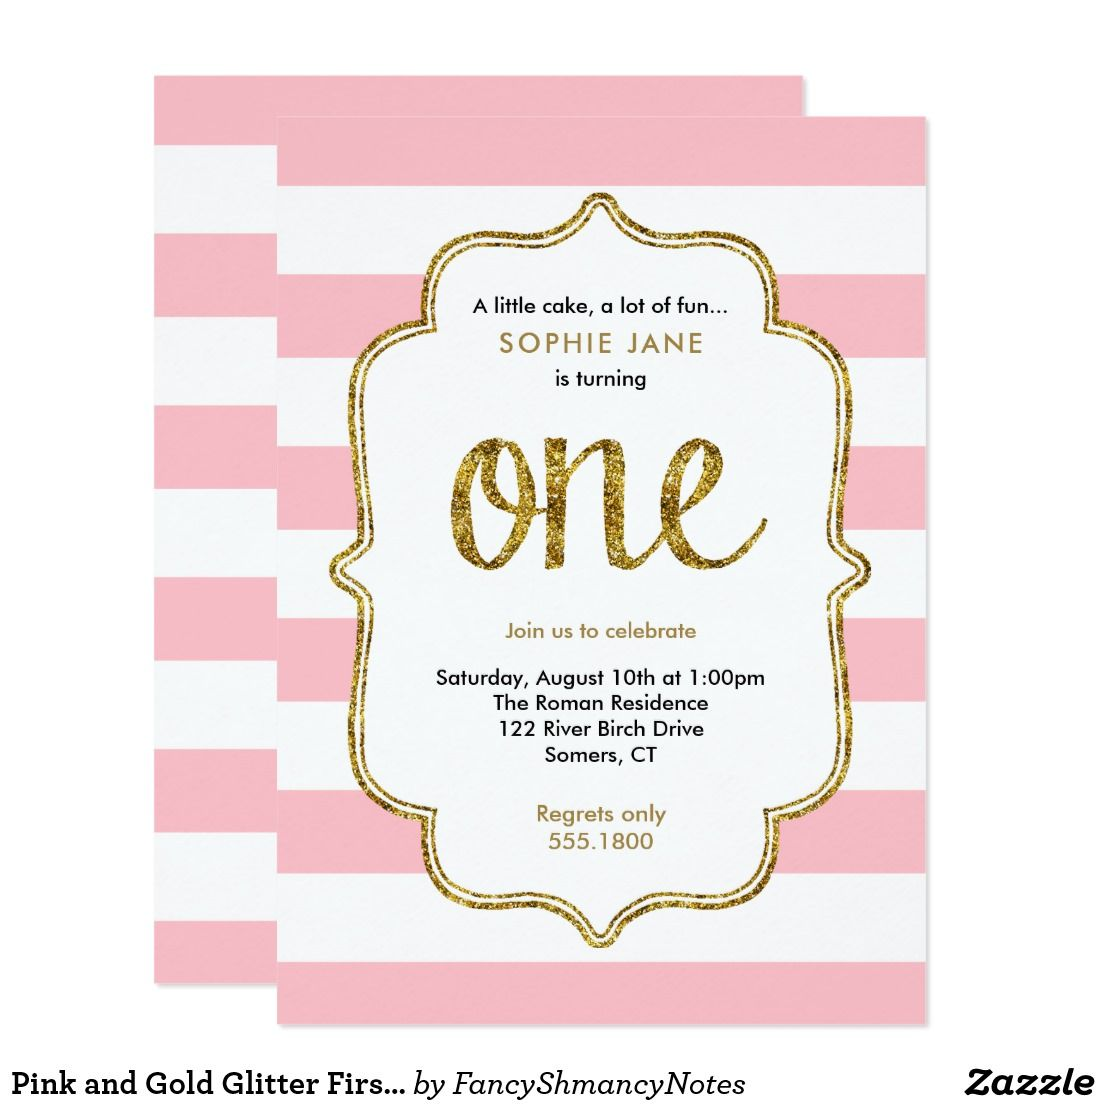 Pink and gold glitter first birthday invitation pink and gold glitter first birthday invitation pink stripes and gold glitter are featured on this stopboris Image collections